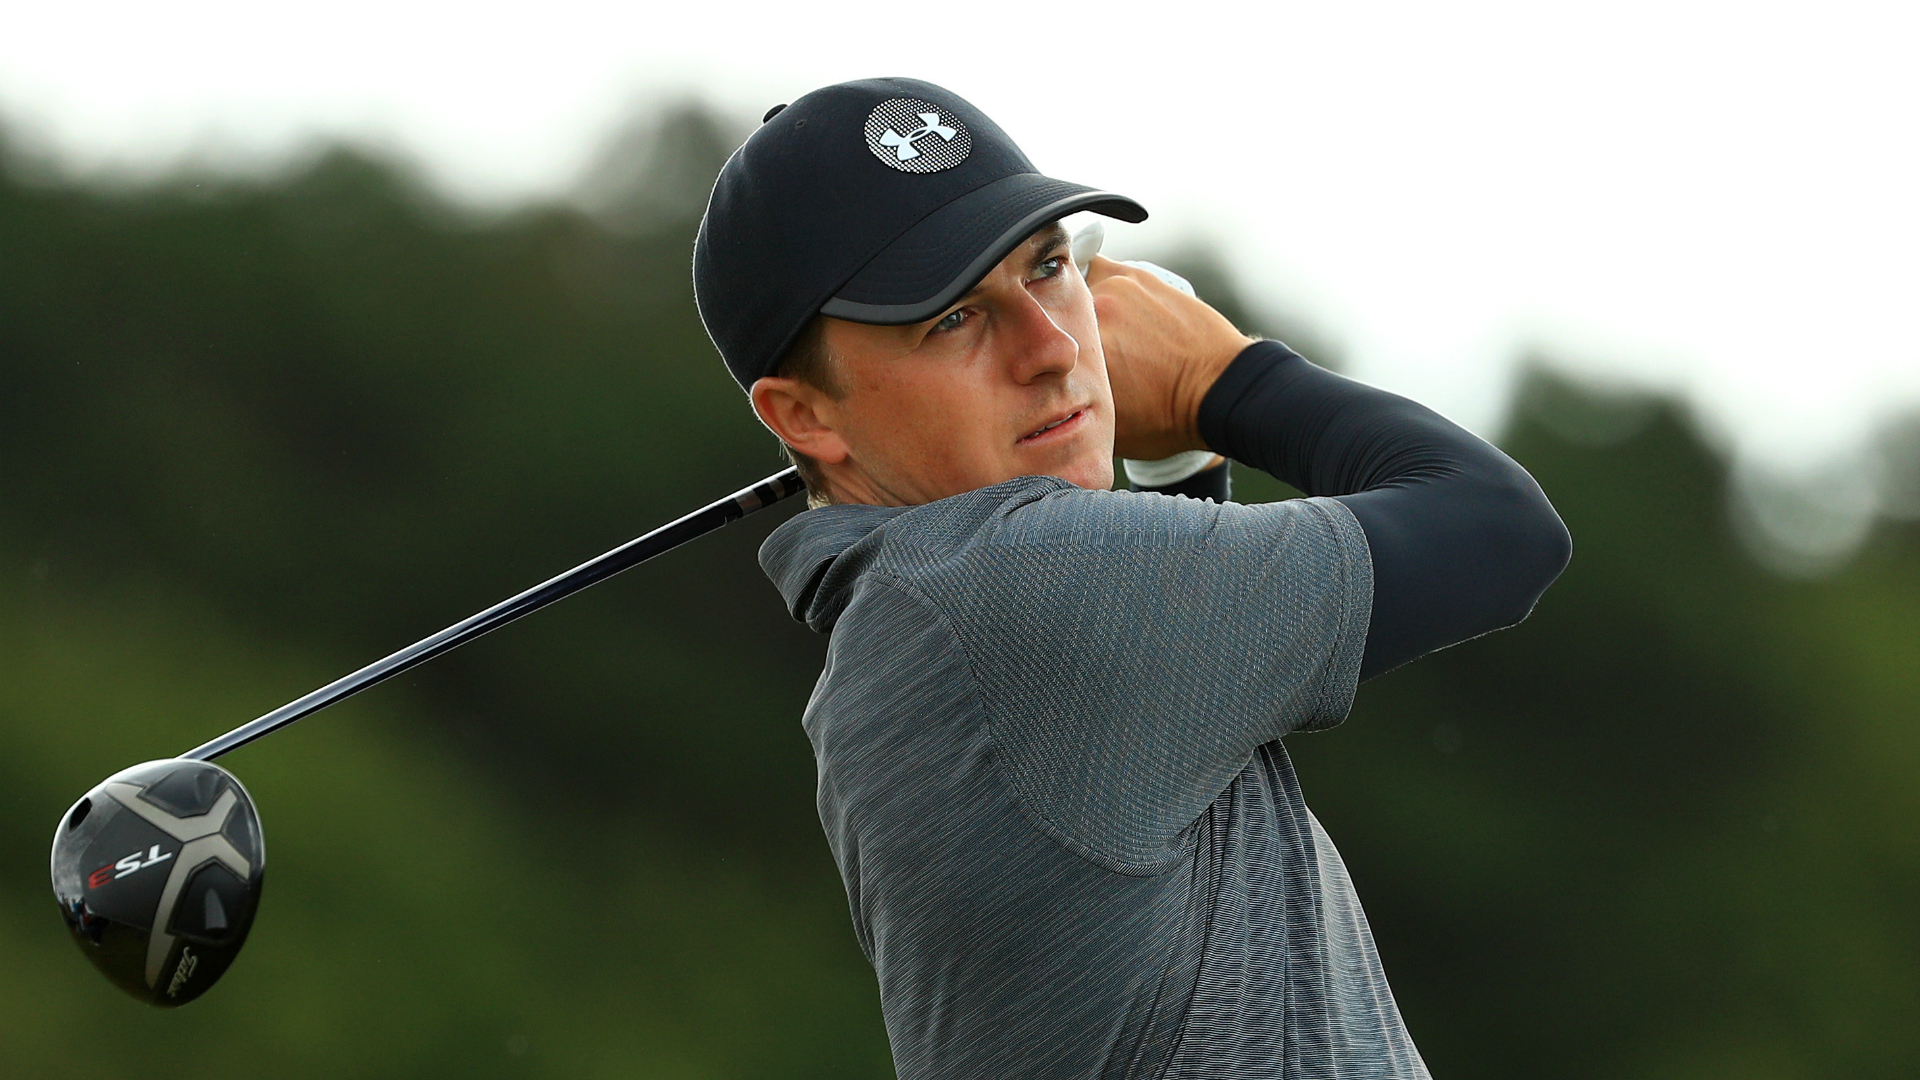 Spieth's love for links golf stems from childhood memories